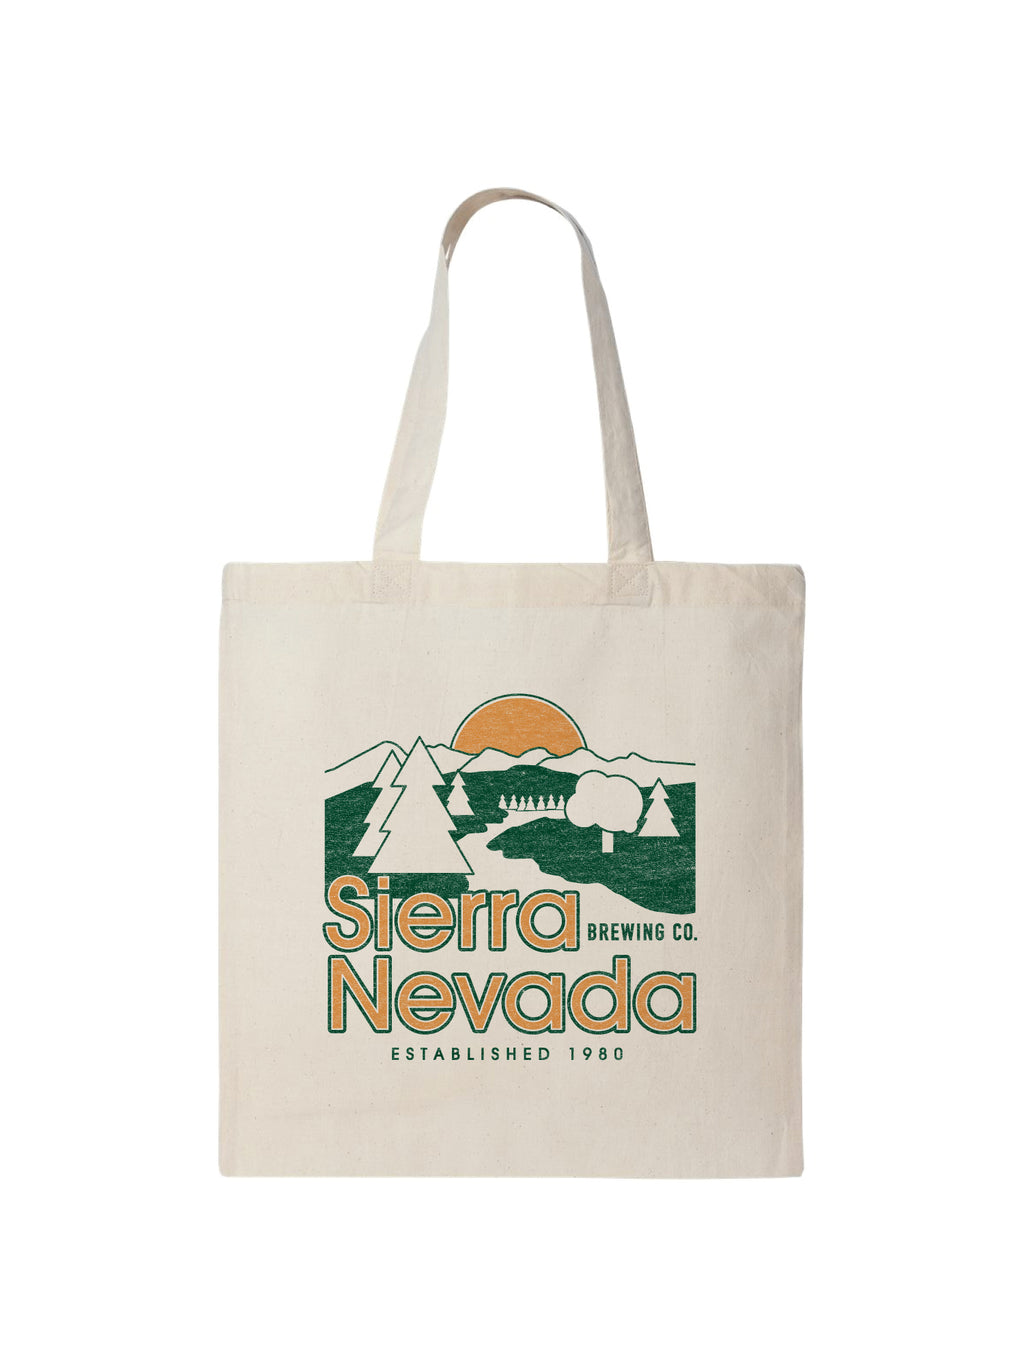 TOTE BAG- CREAM - Anderson Bros Design and Supply